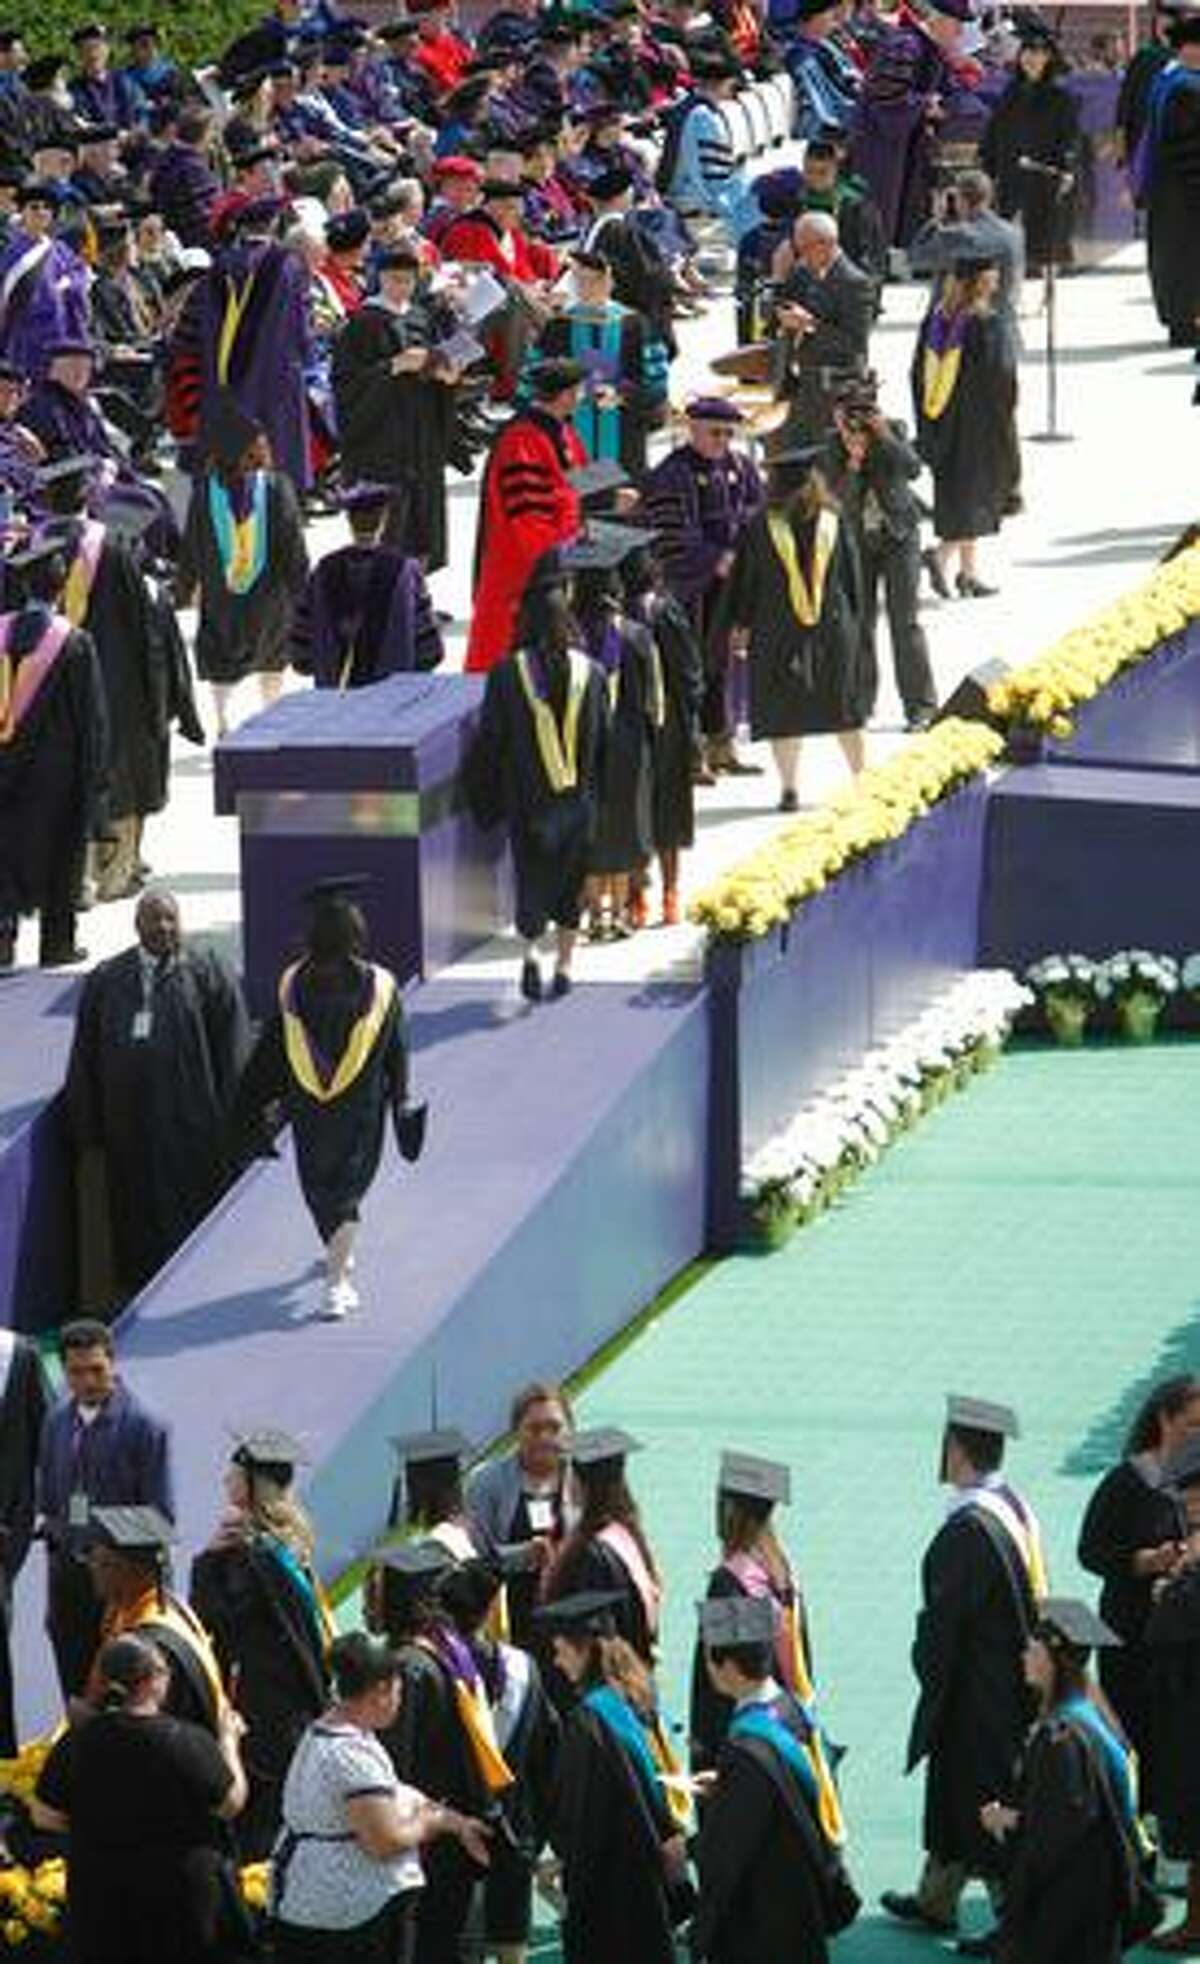 Masters students receive their degrees.